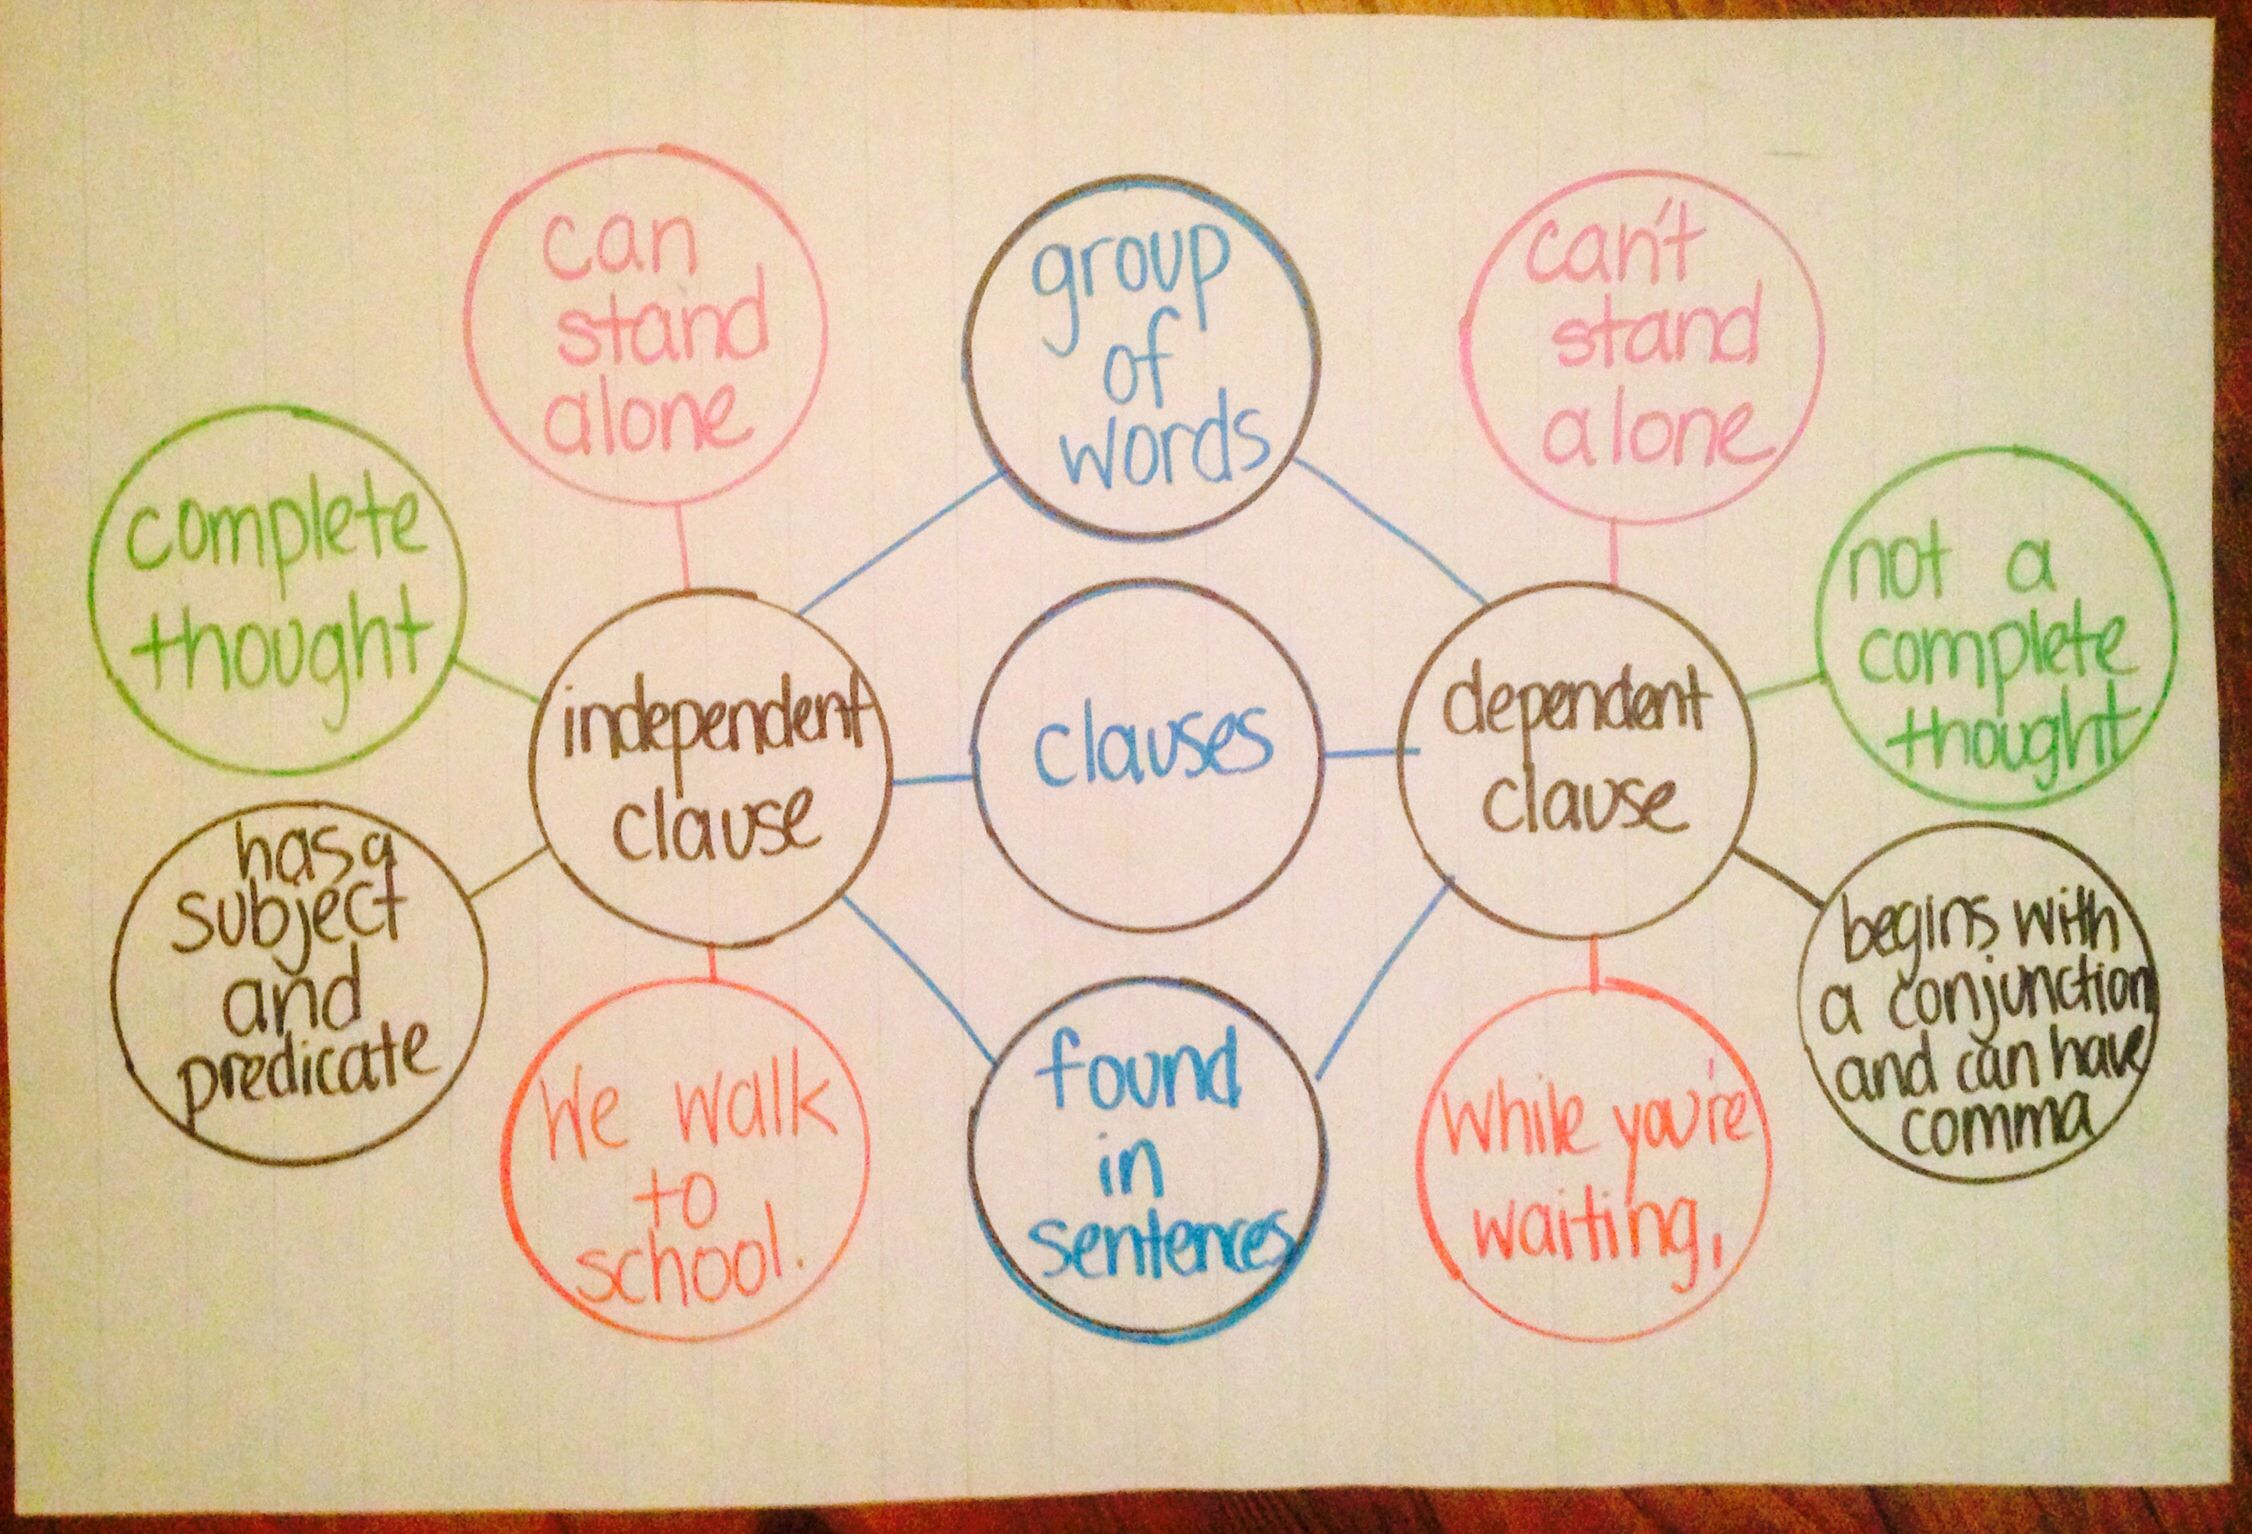 Comparing And Contrasting Independent And Dependent Clause